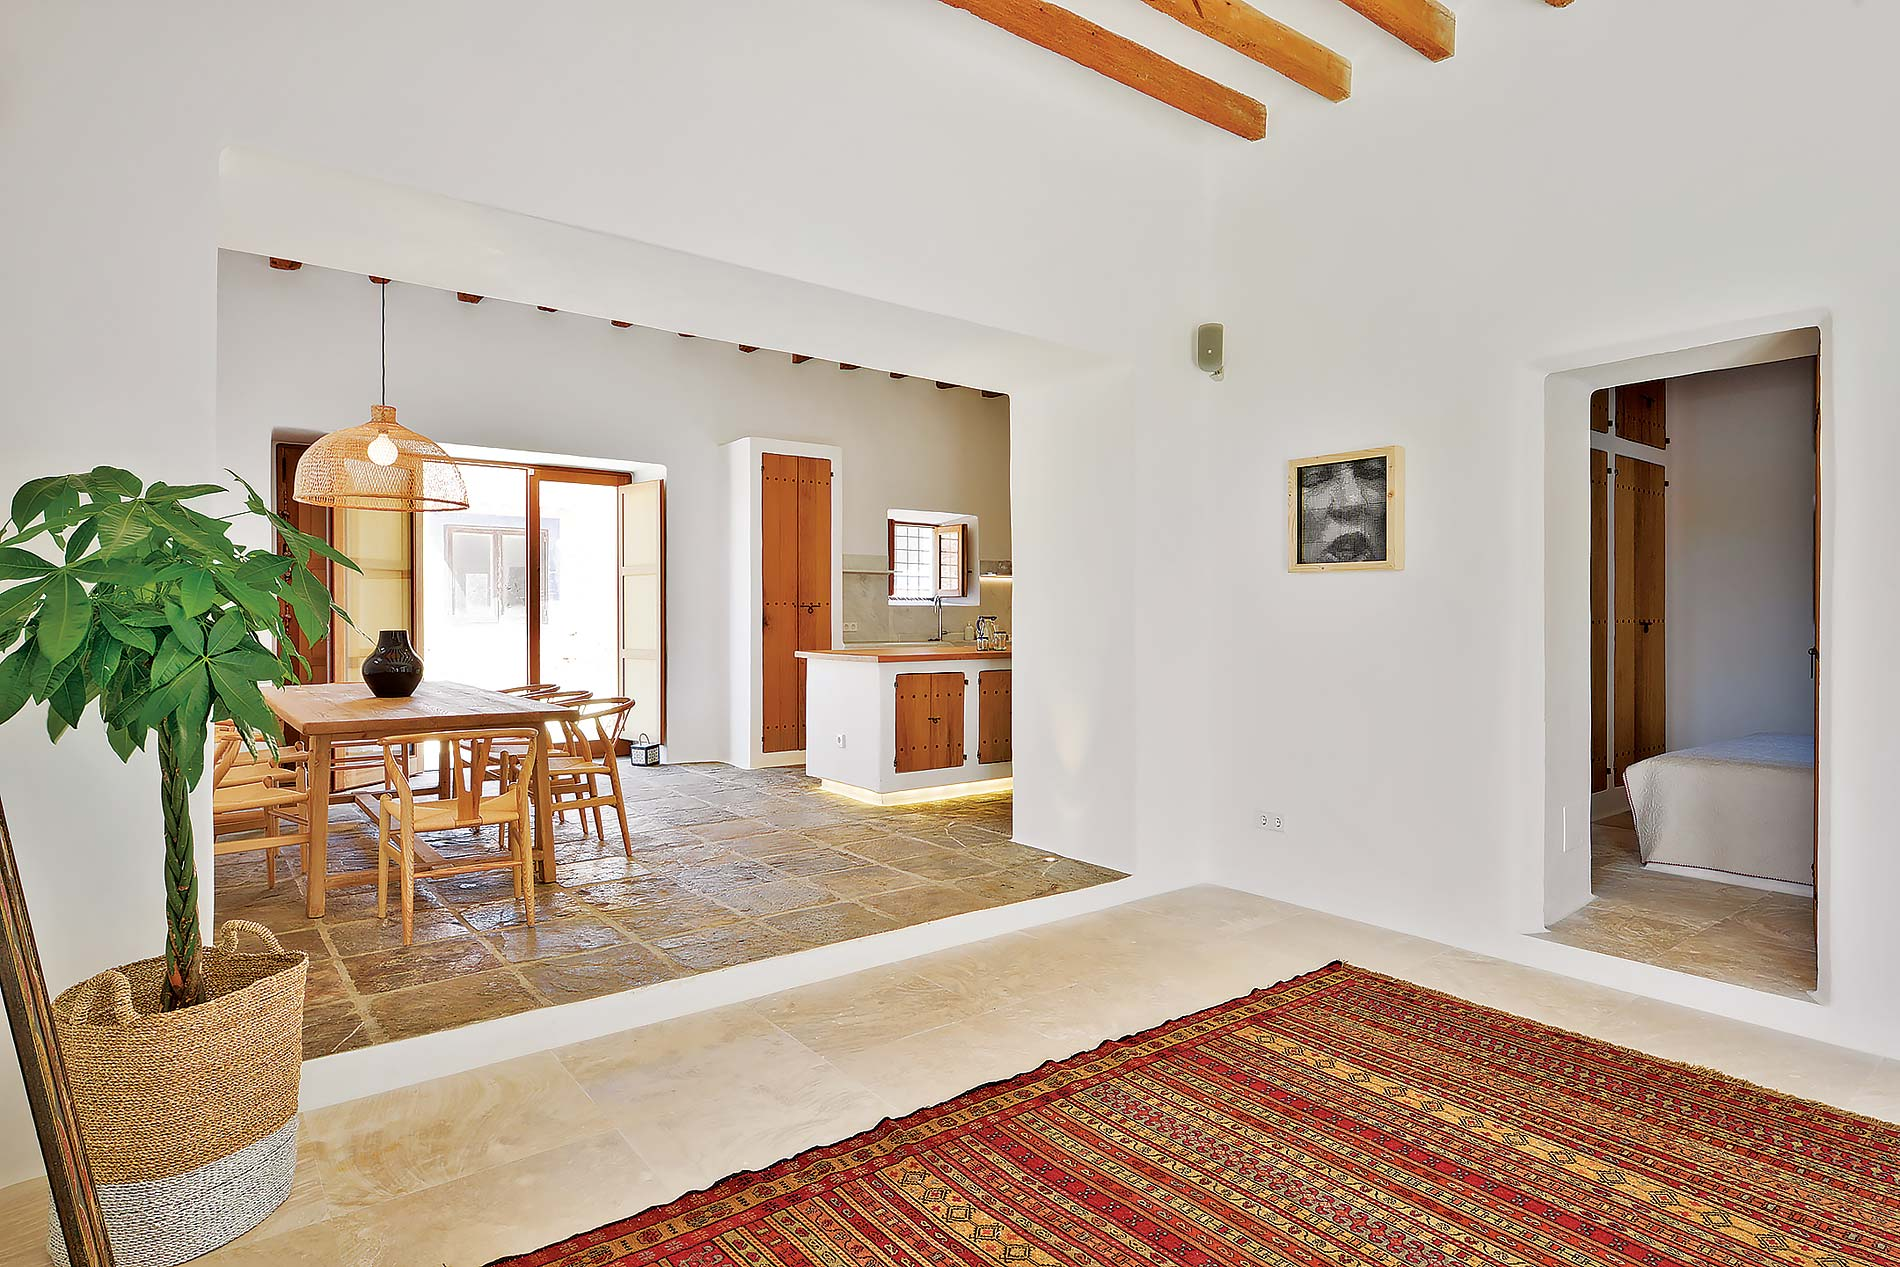 Villa Can Pep Pol in Santa Eulalia - sleeps 8 people